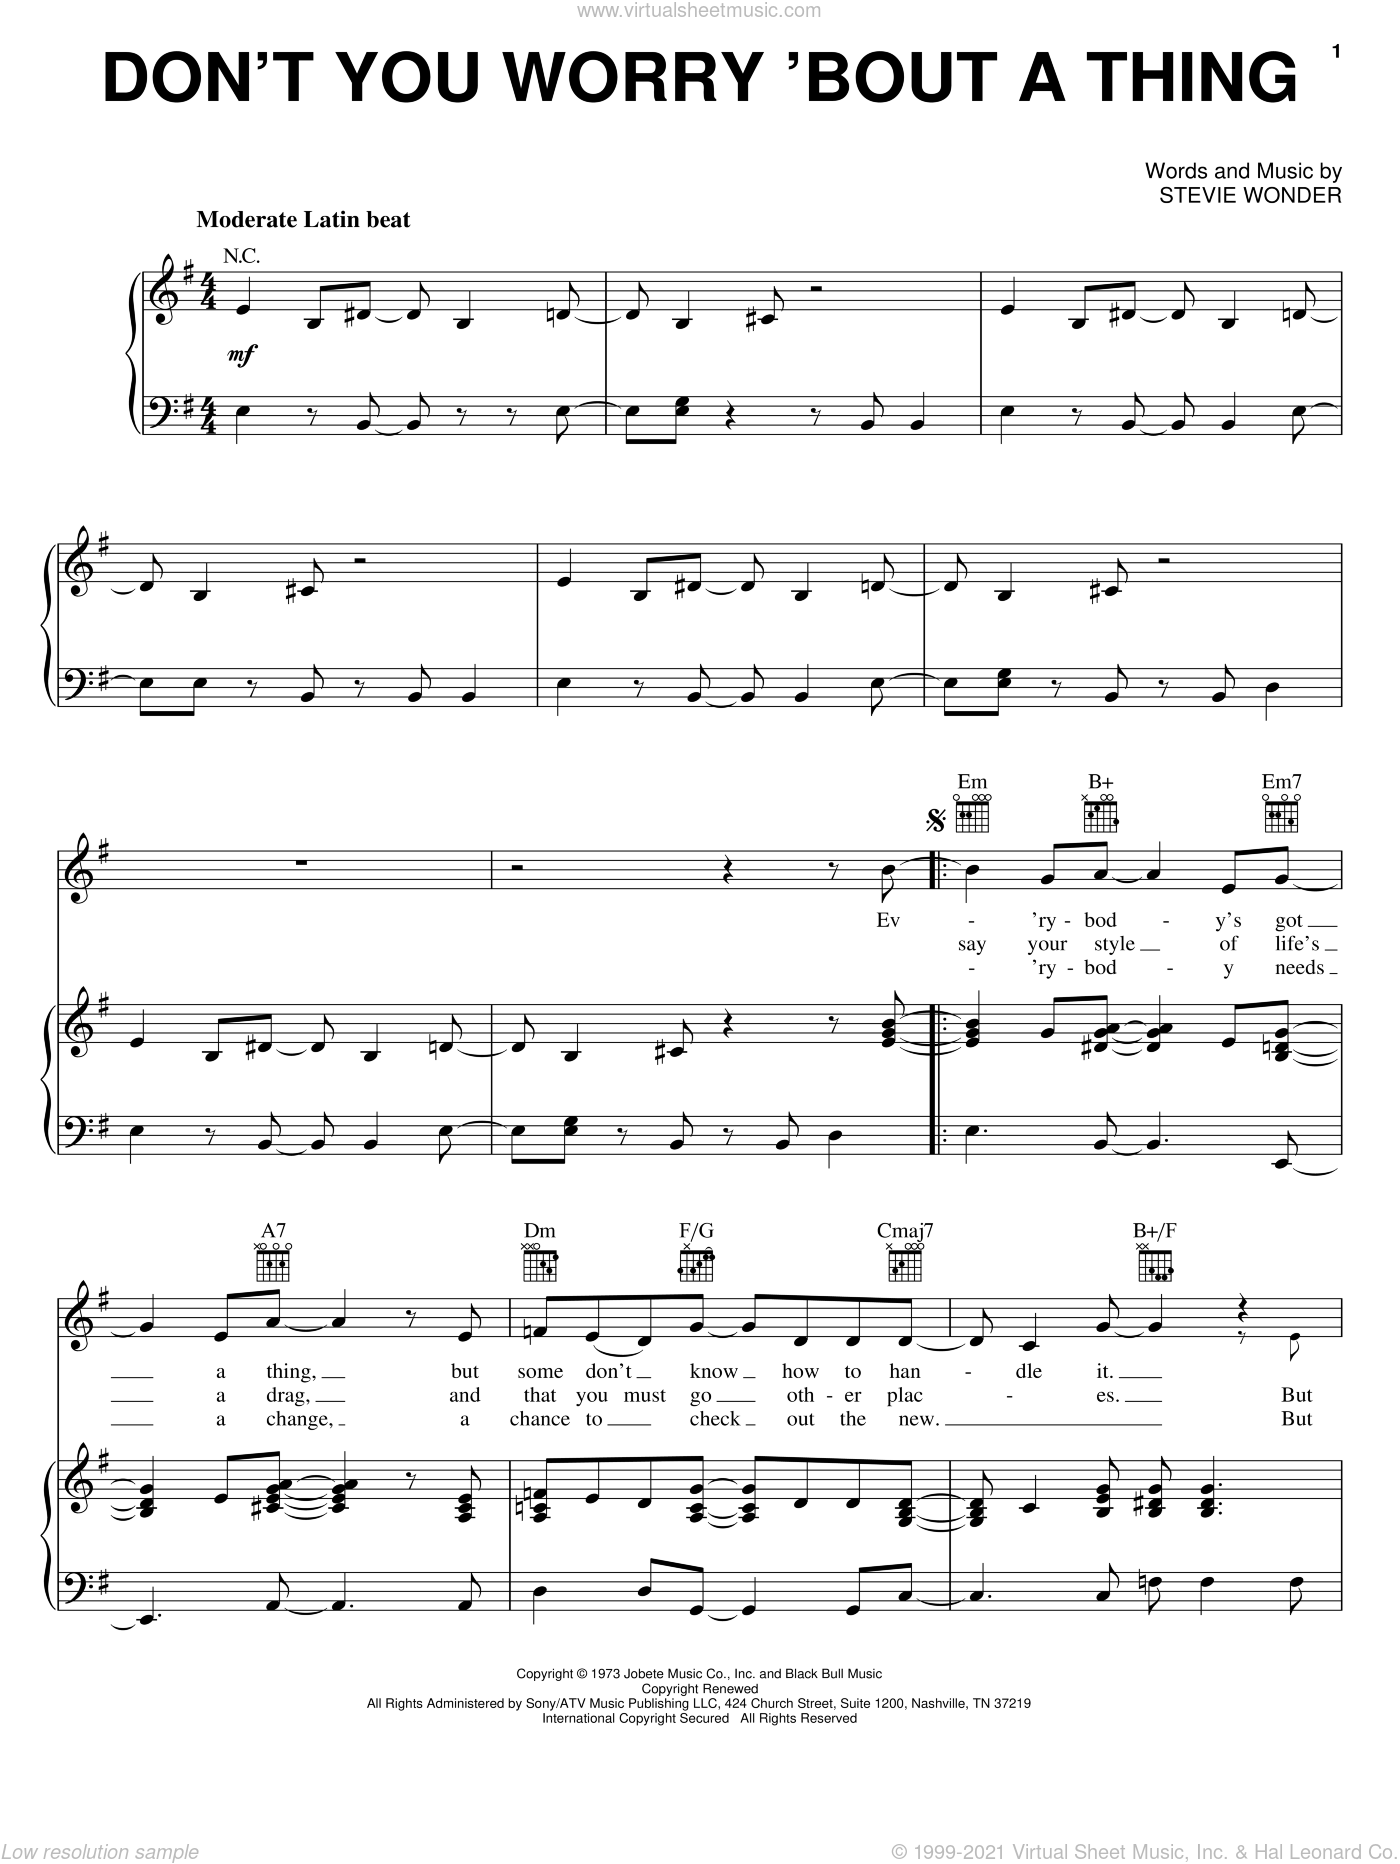 Don't You Worry 'Bout A Thing sheet music for voice, piano or guitar by Stevie Wonder, intermediate skill level